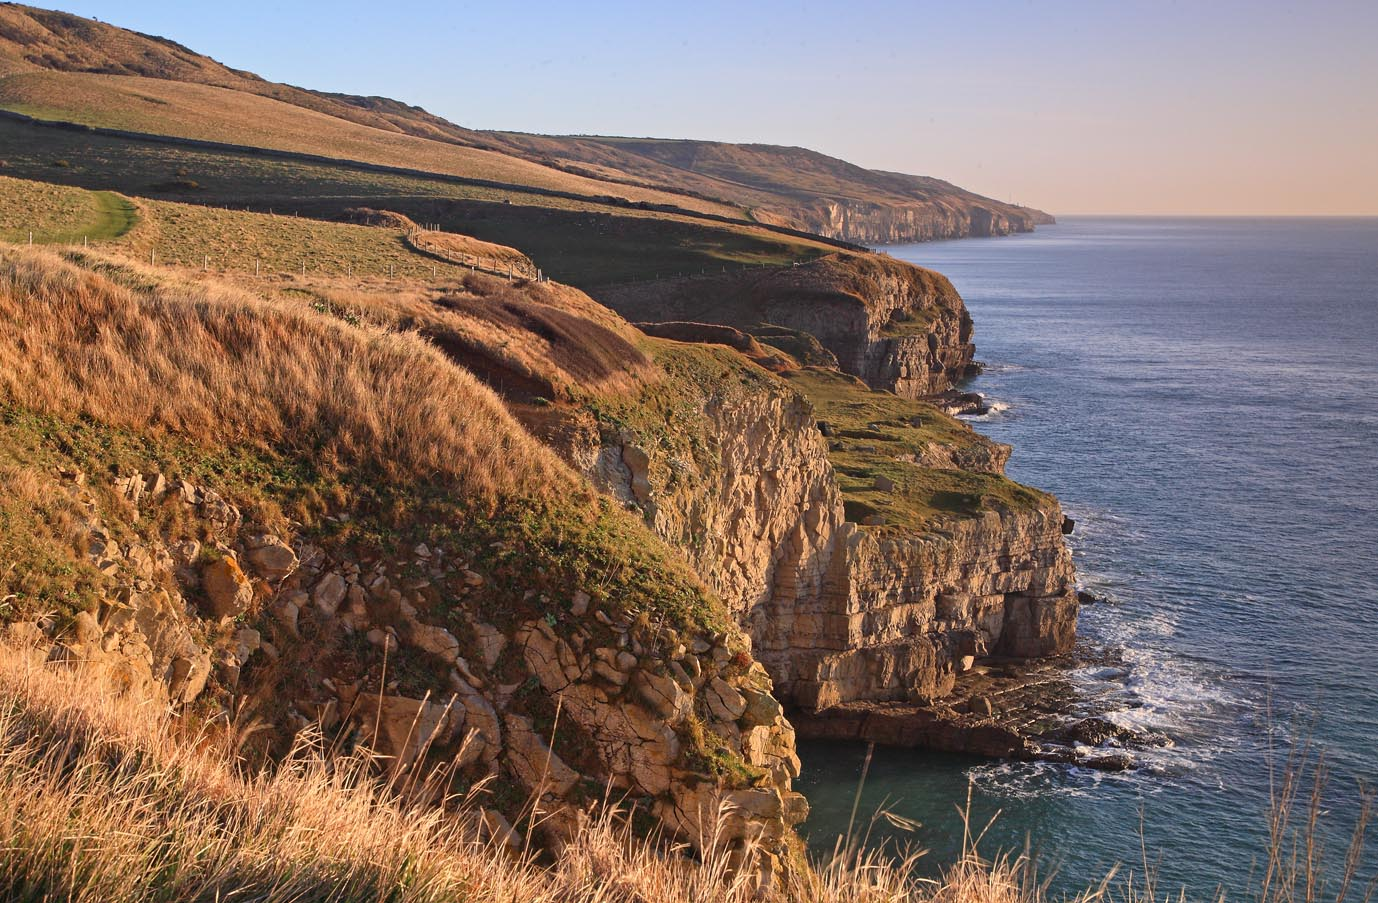 The Purbeck coast